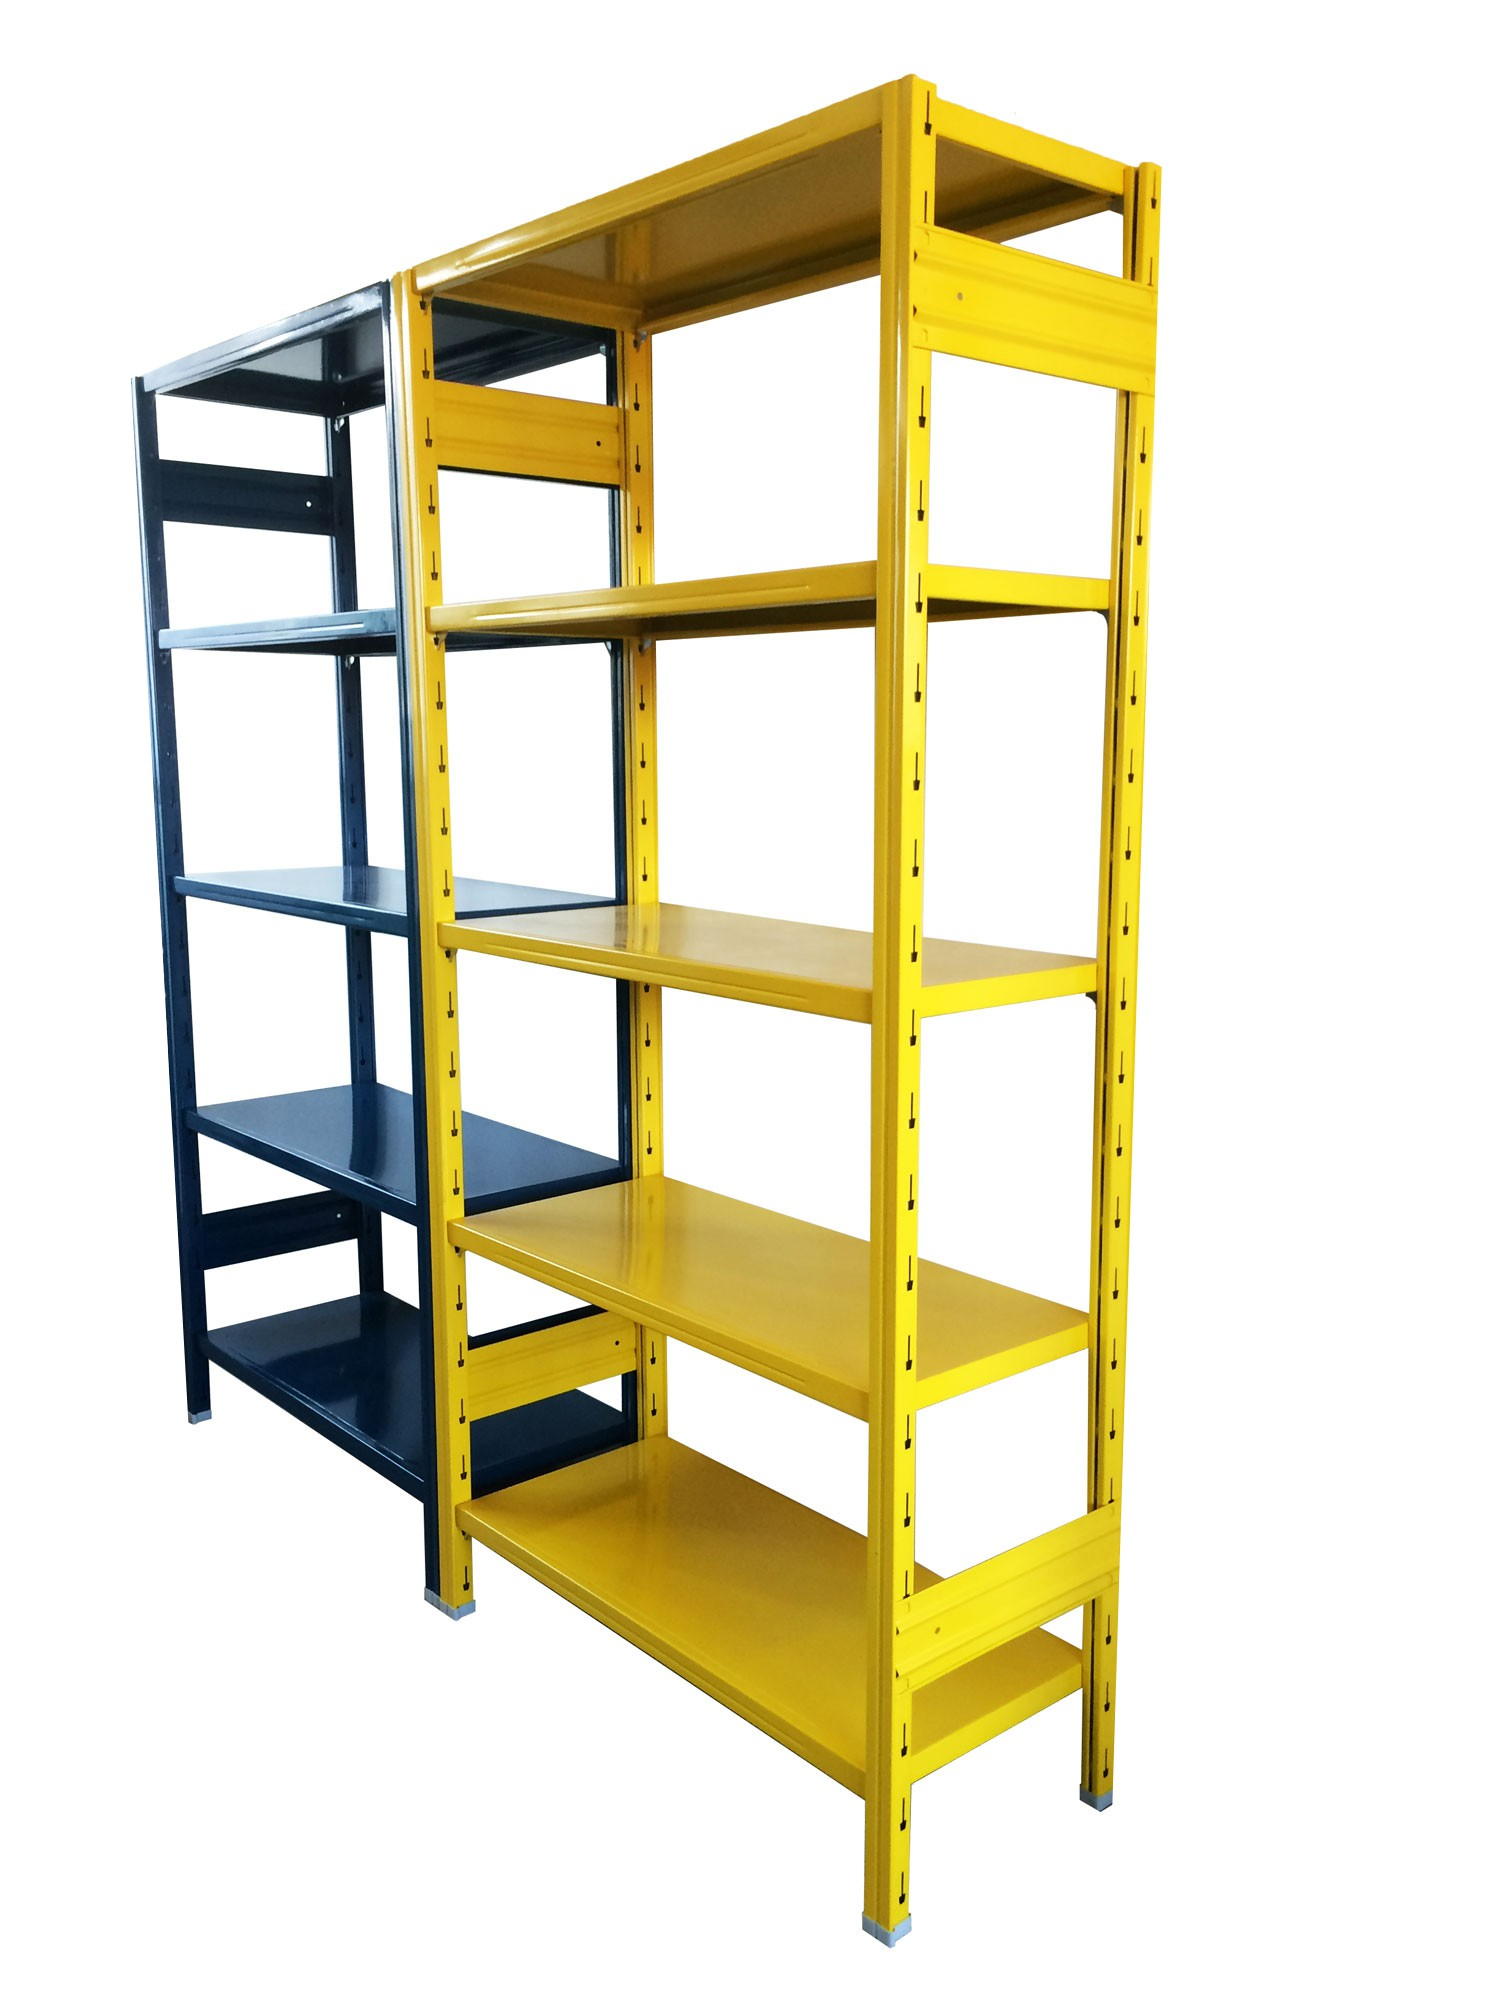 Walmart Shelving | Wire Shelving Units Walmart | Clothes Shelves Walmart